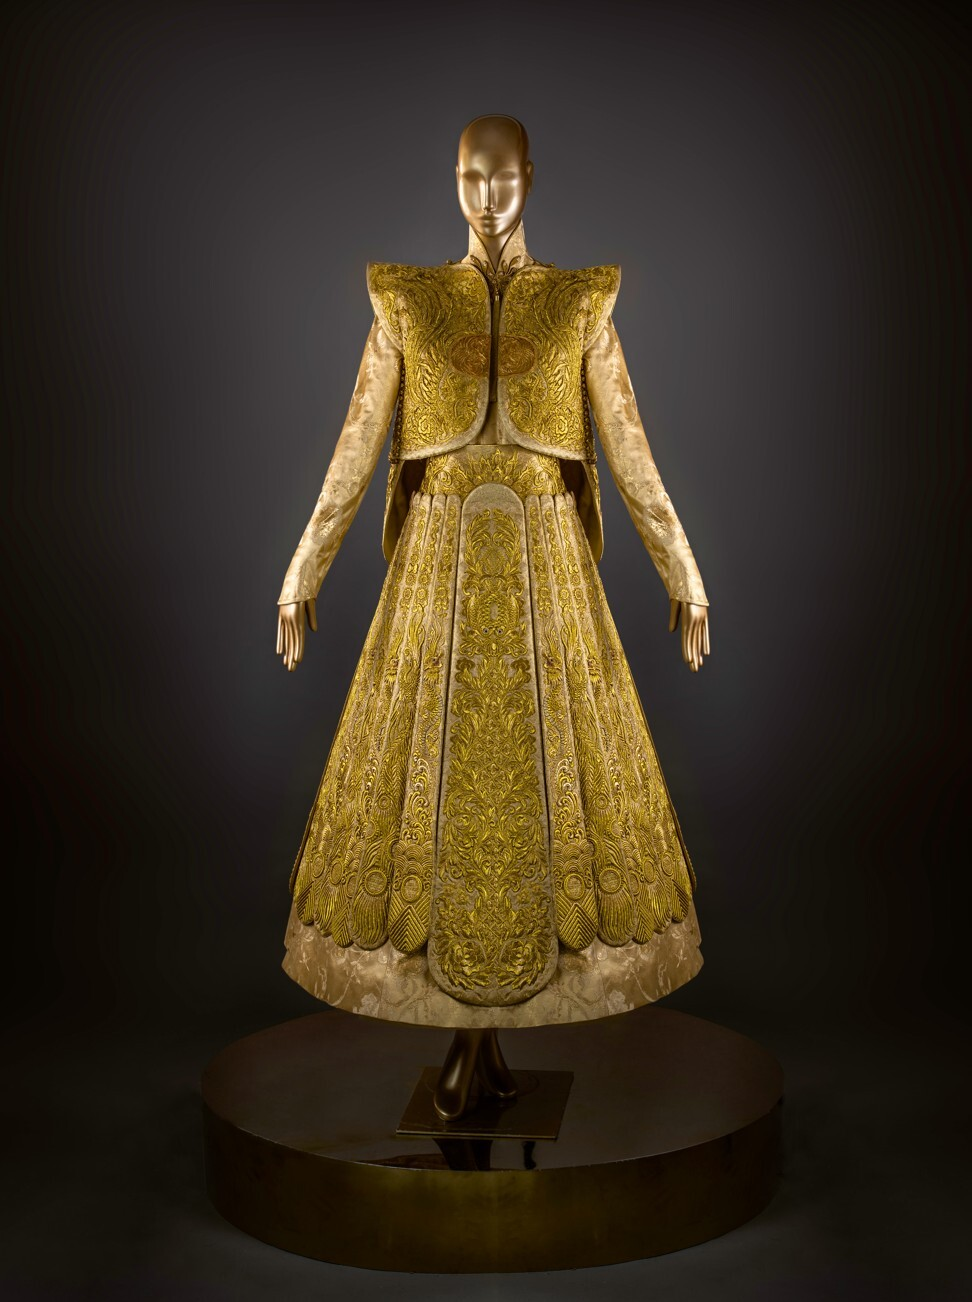 Guo Pei's traditional bridal dress took five years to make using pure gold embroidery thread. Photo: Guo Pei